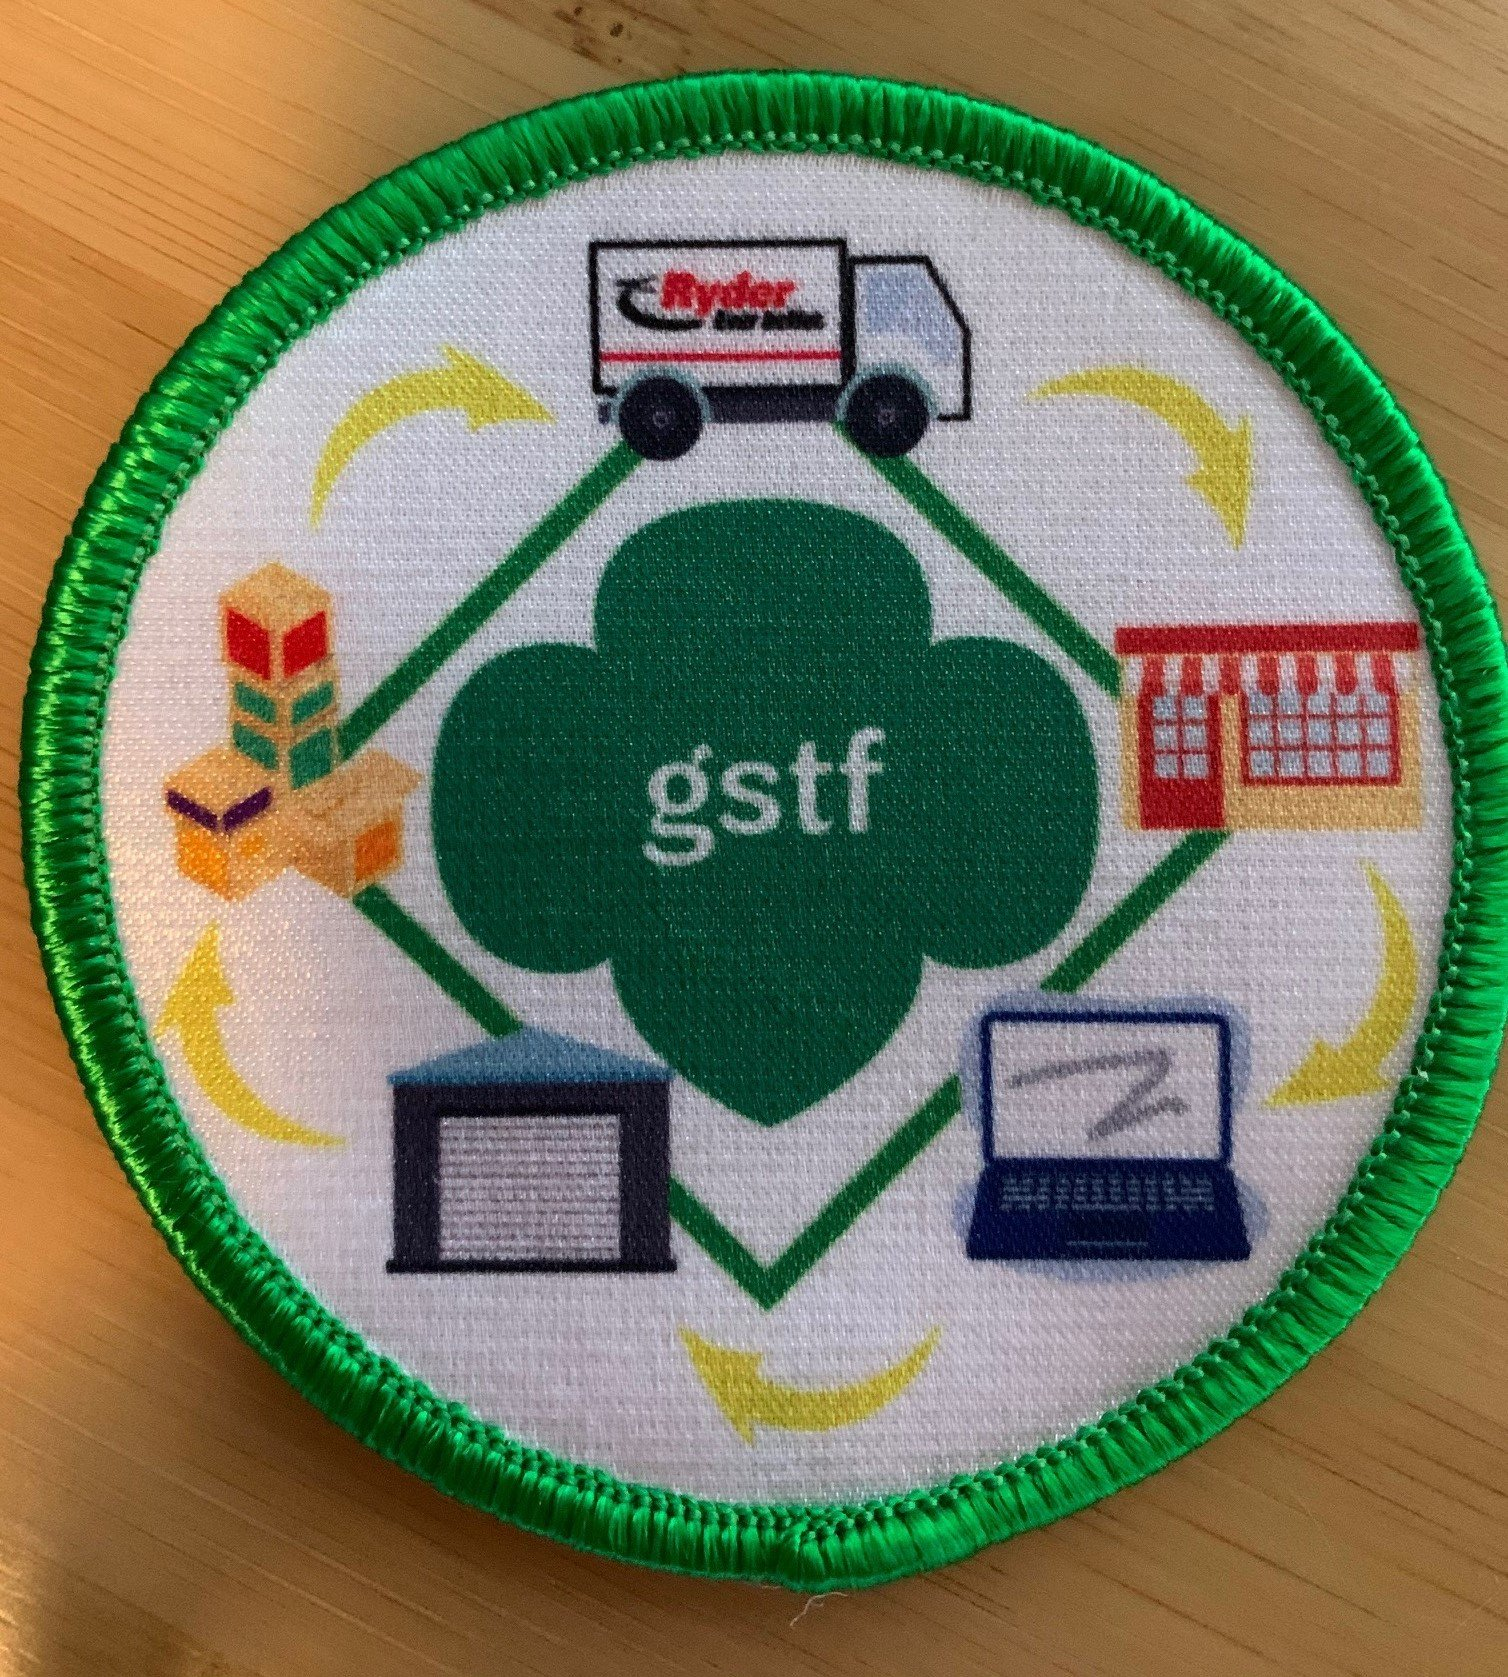 Girl Scouts, Ryder Unveil Supply Chain Patch